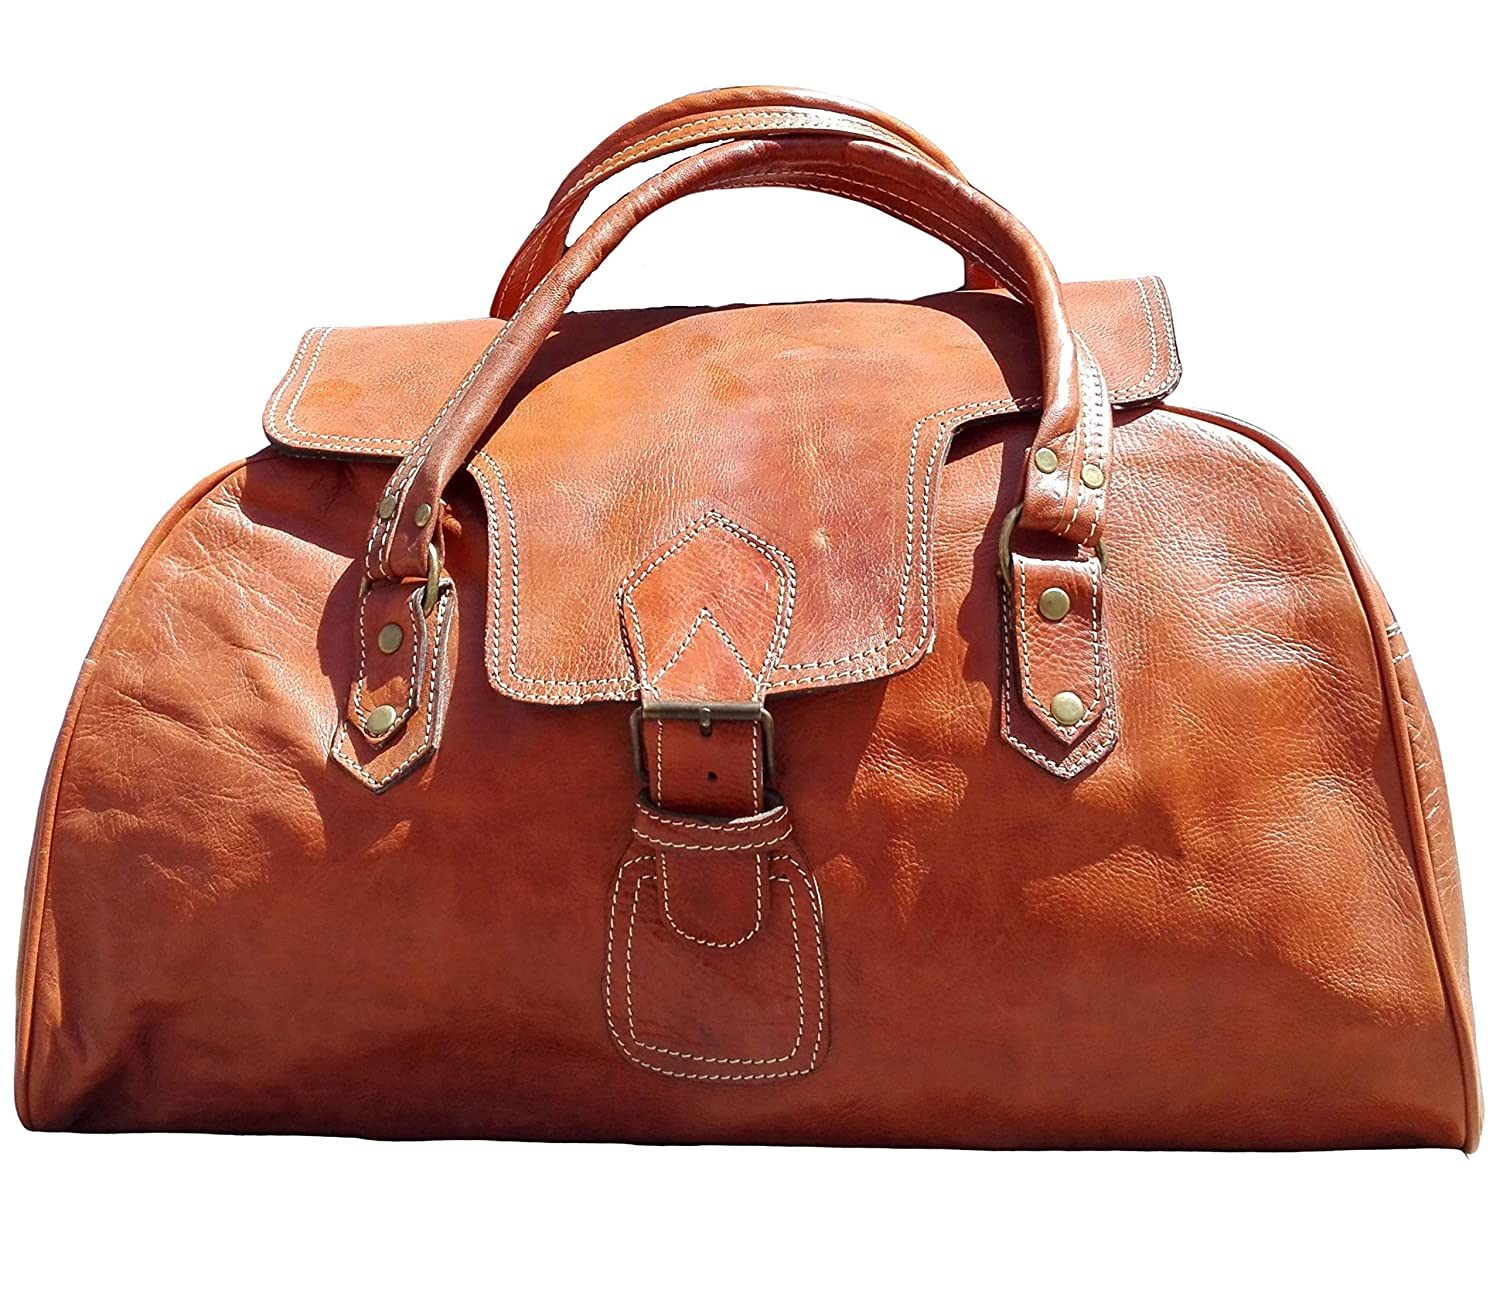 Bag Leather Travel Men Luggage Gym Duffle S Handbag Large Vintage Overnight New